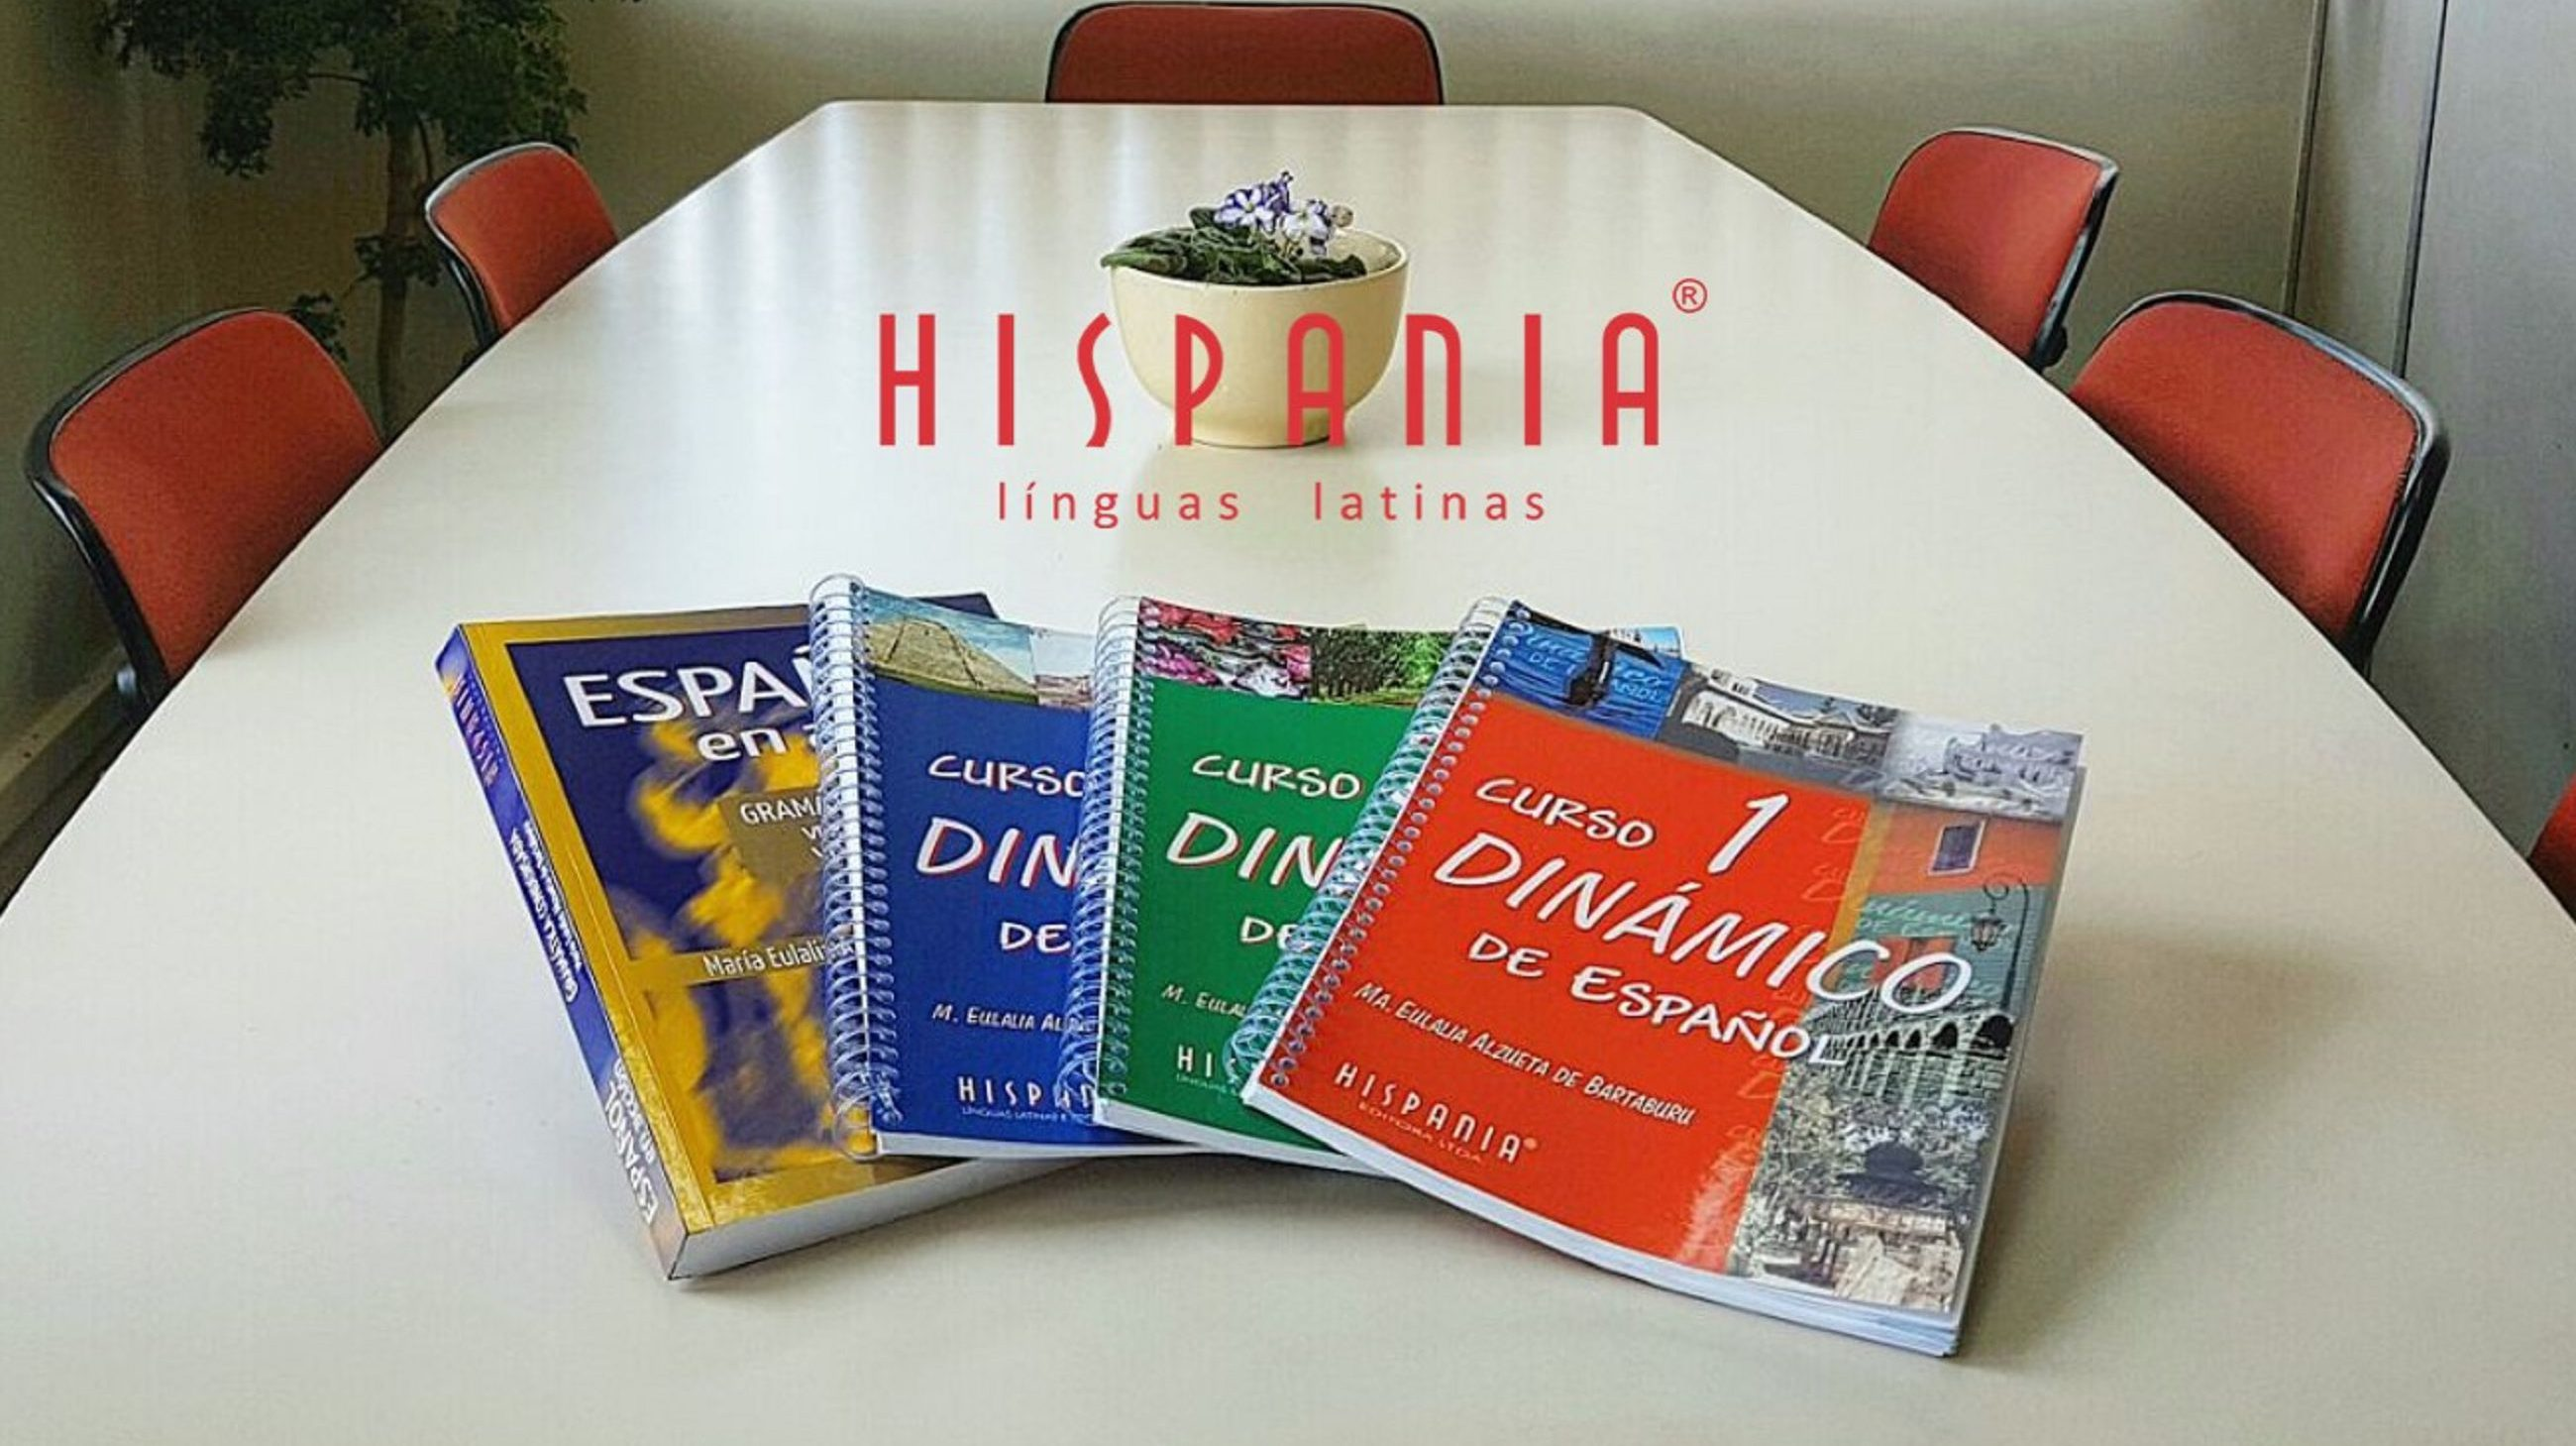 Hispania Línguas -